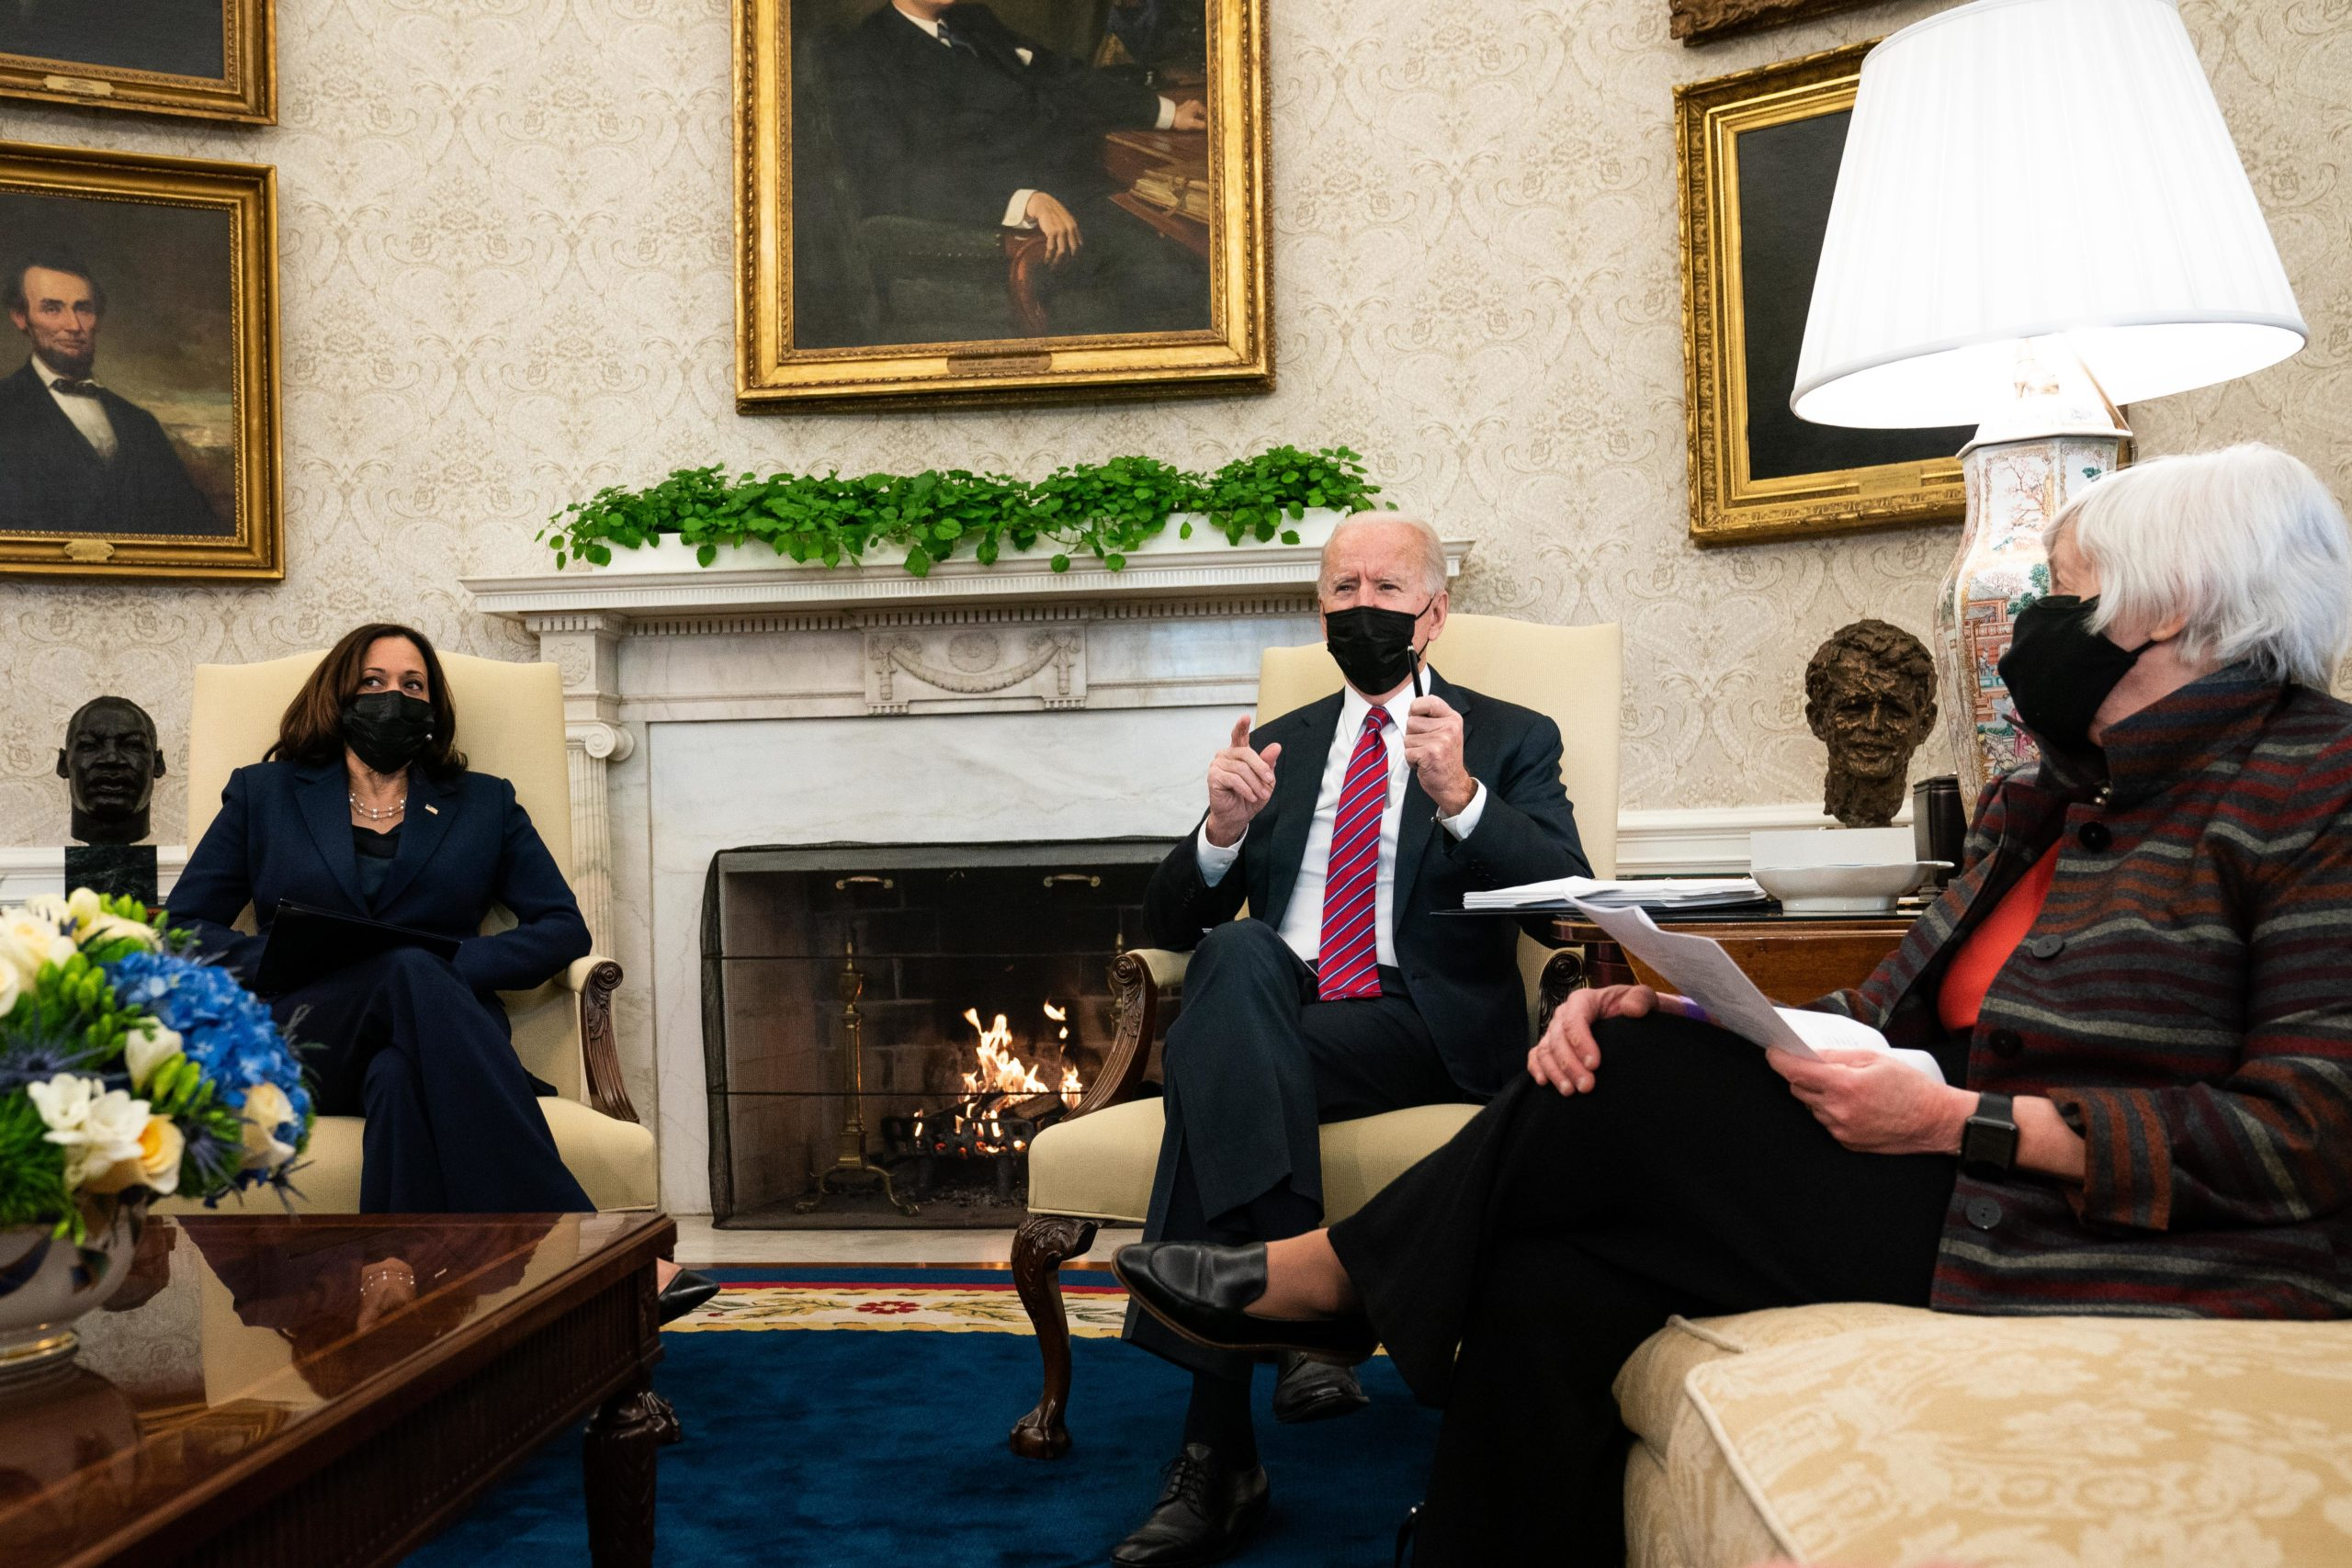 Vice President Kamala Harris and President Joe Biden meet with Treasury Sec. Janet Yellen in the Oval Office on Friday. (Anna Moneymaker/Pool/Getty Images)